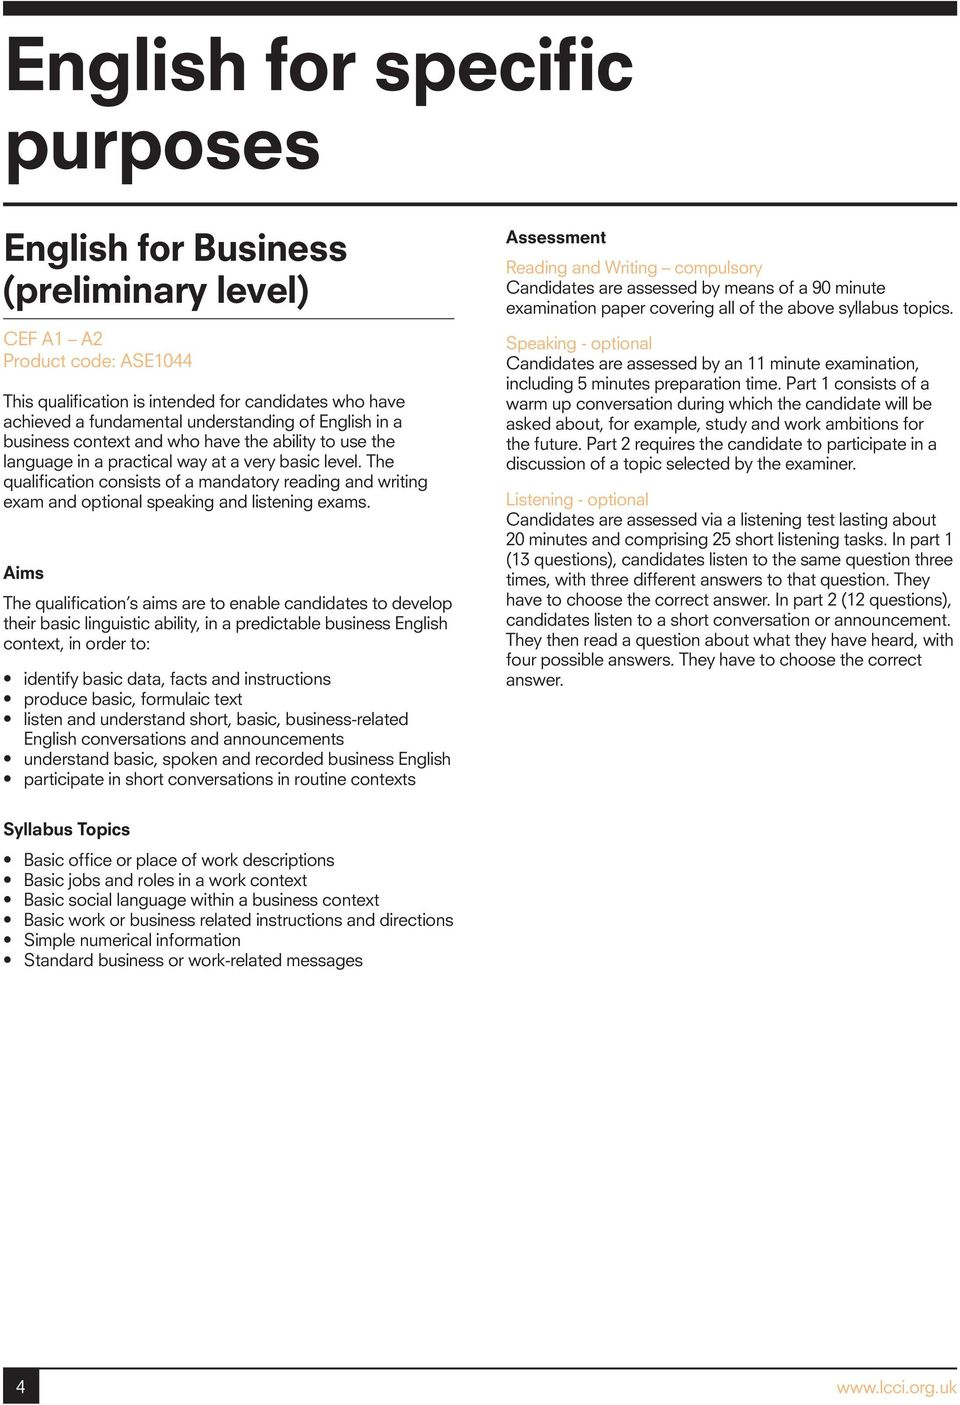 English Topic For Speaking